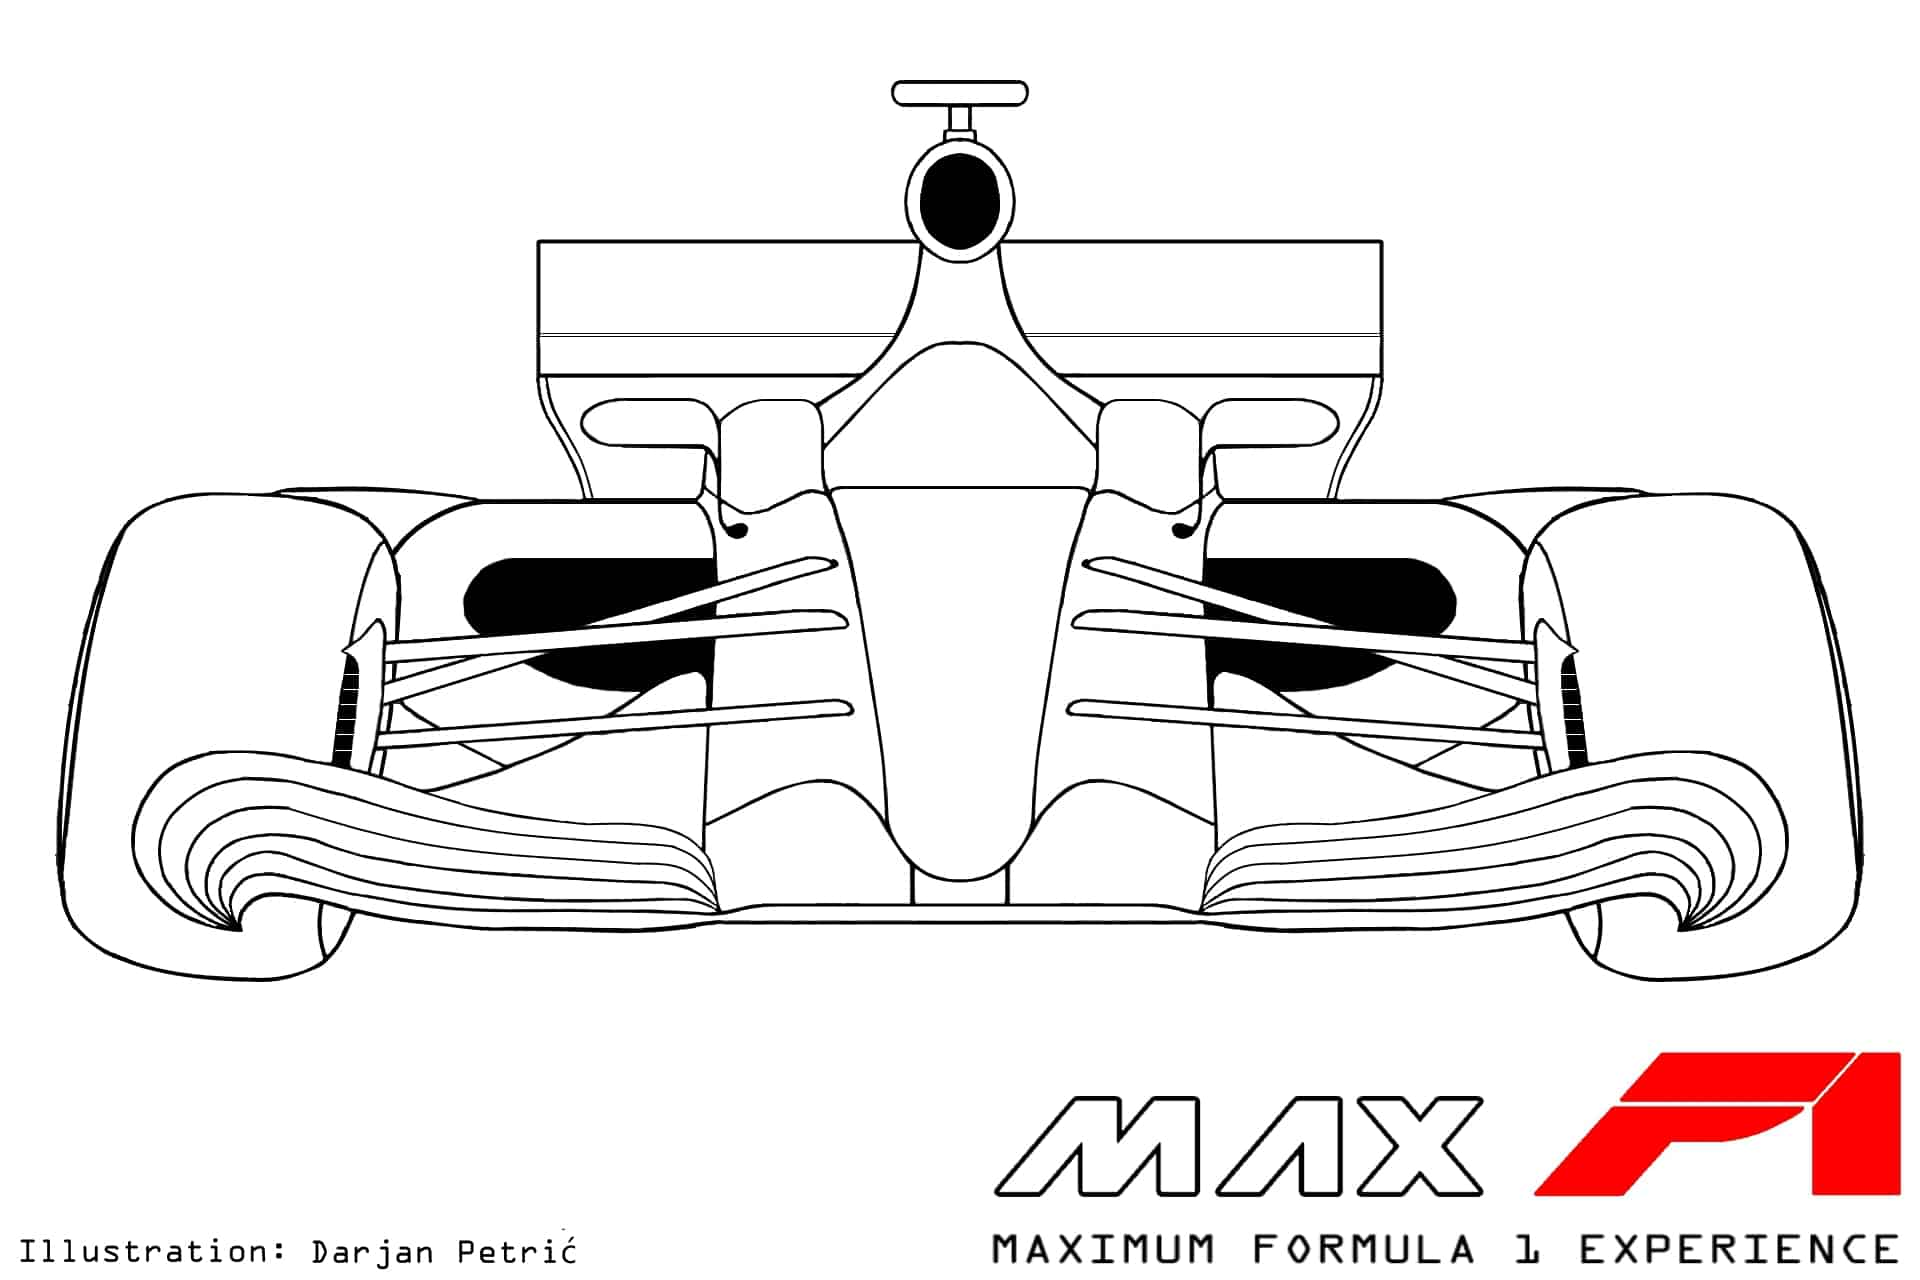 Formula 1 2017 car front technical drawing by Darjan Petric maxf1.net eng red